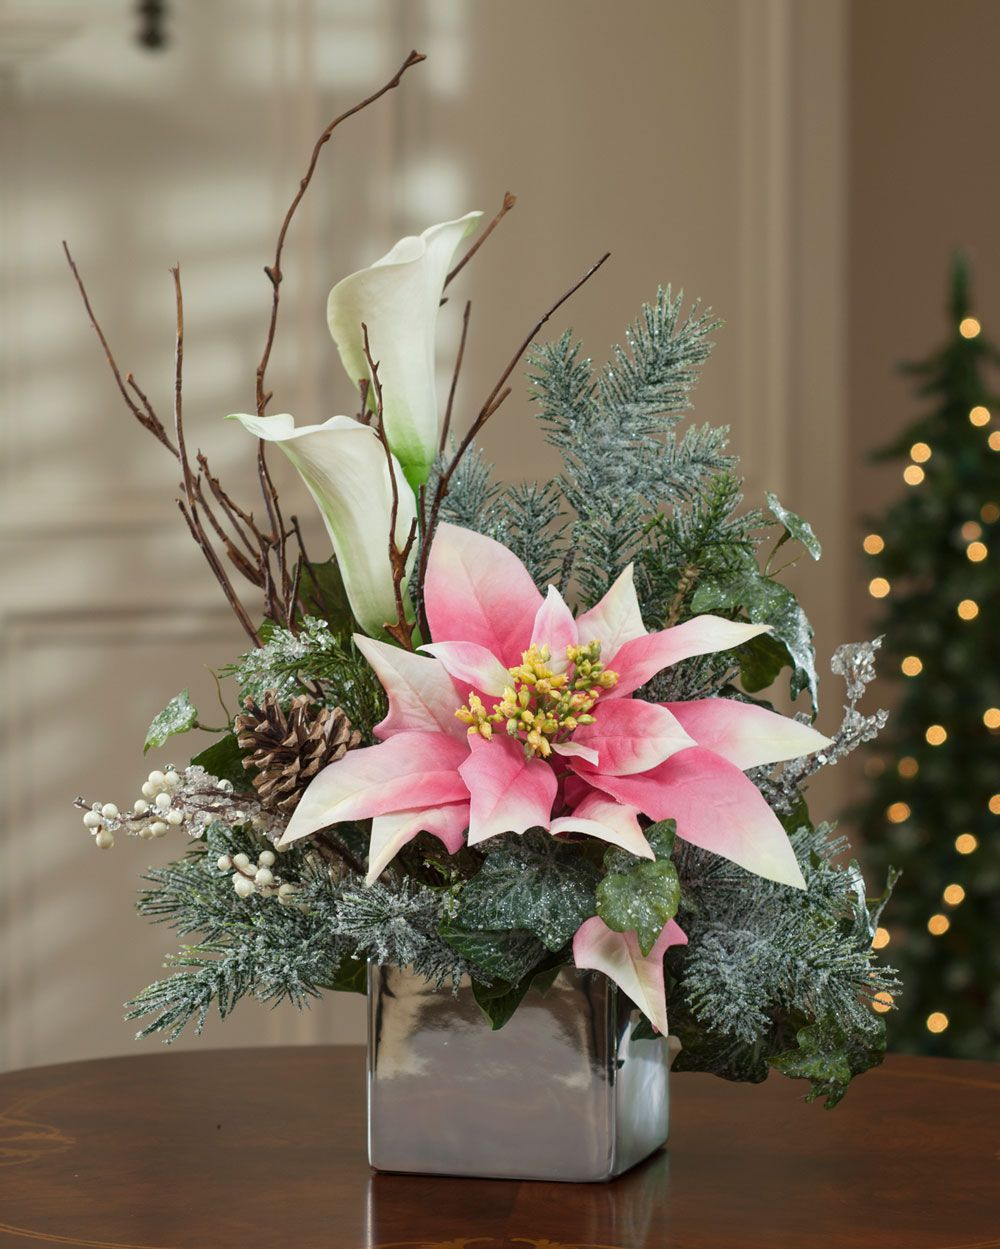 Poinsettia Calla Lily Silk Flower Arrangement Christmas Flower Arrangements Christmas Floral Arrangements Christmas Arrangements